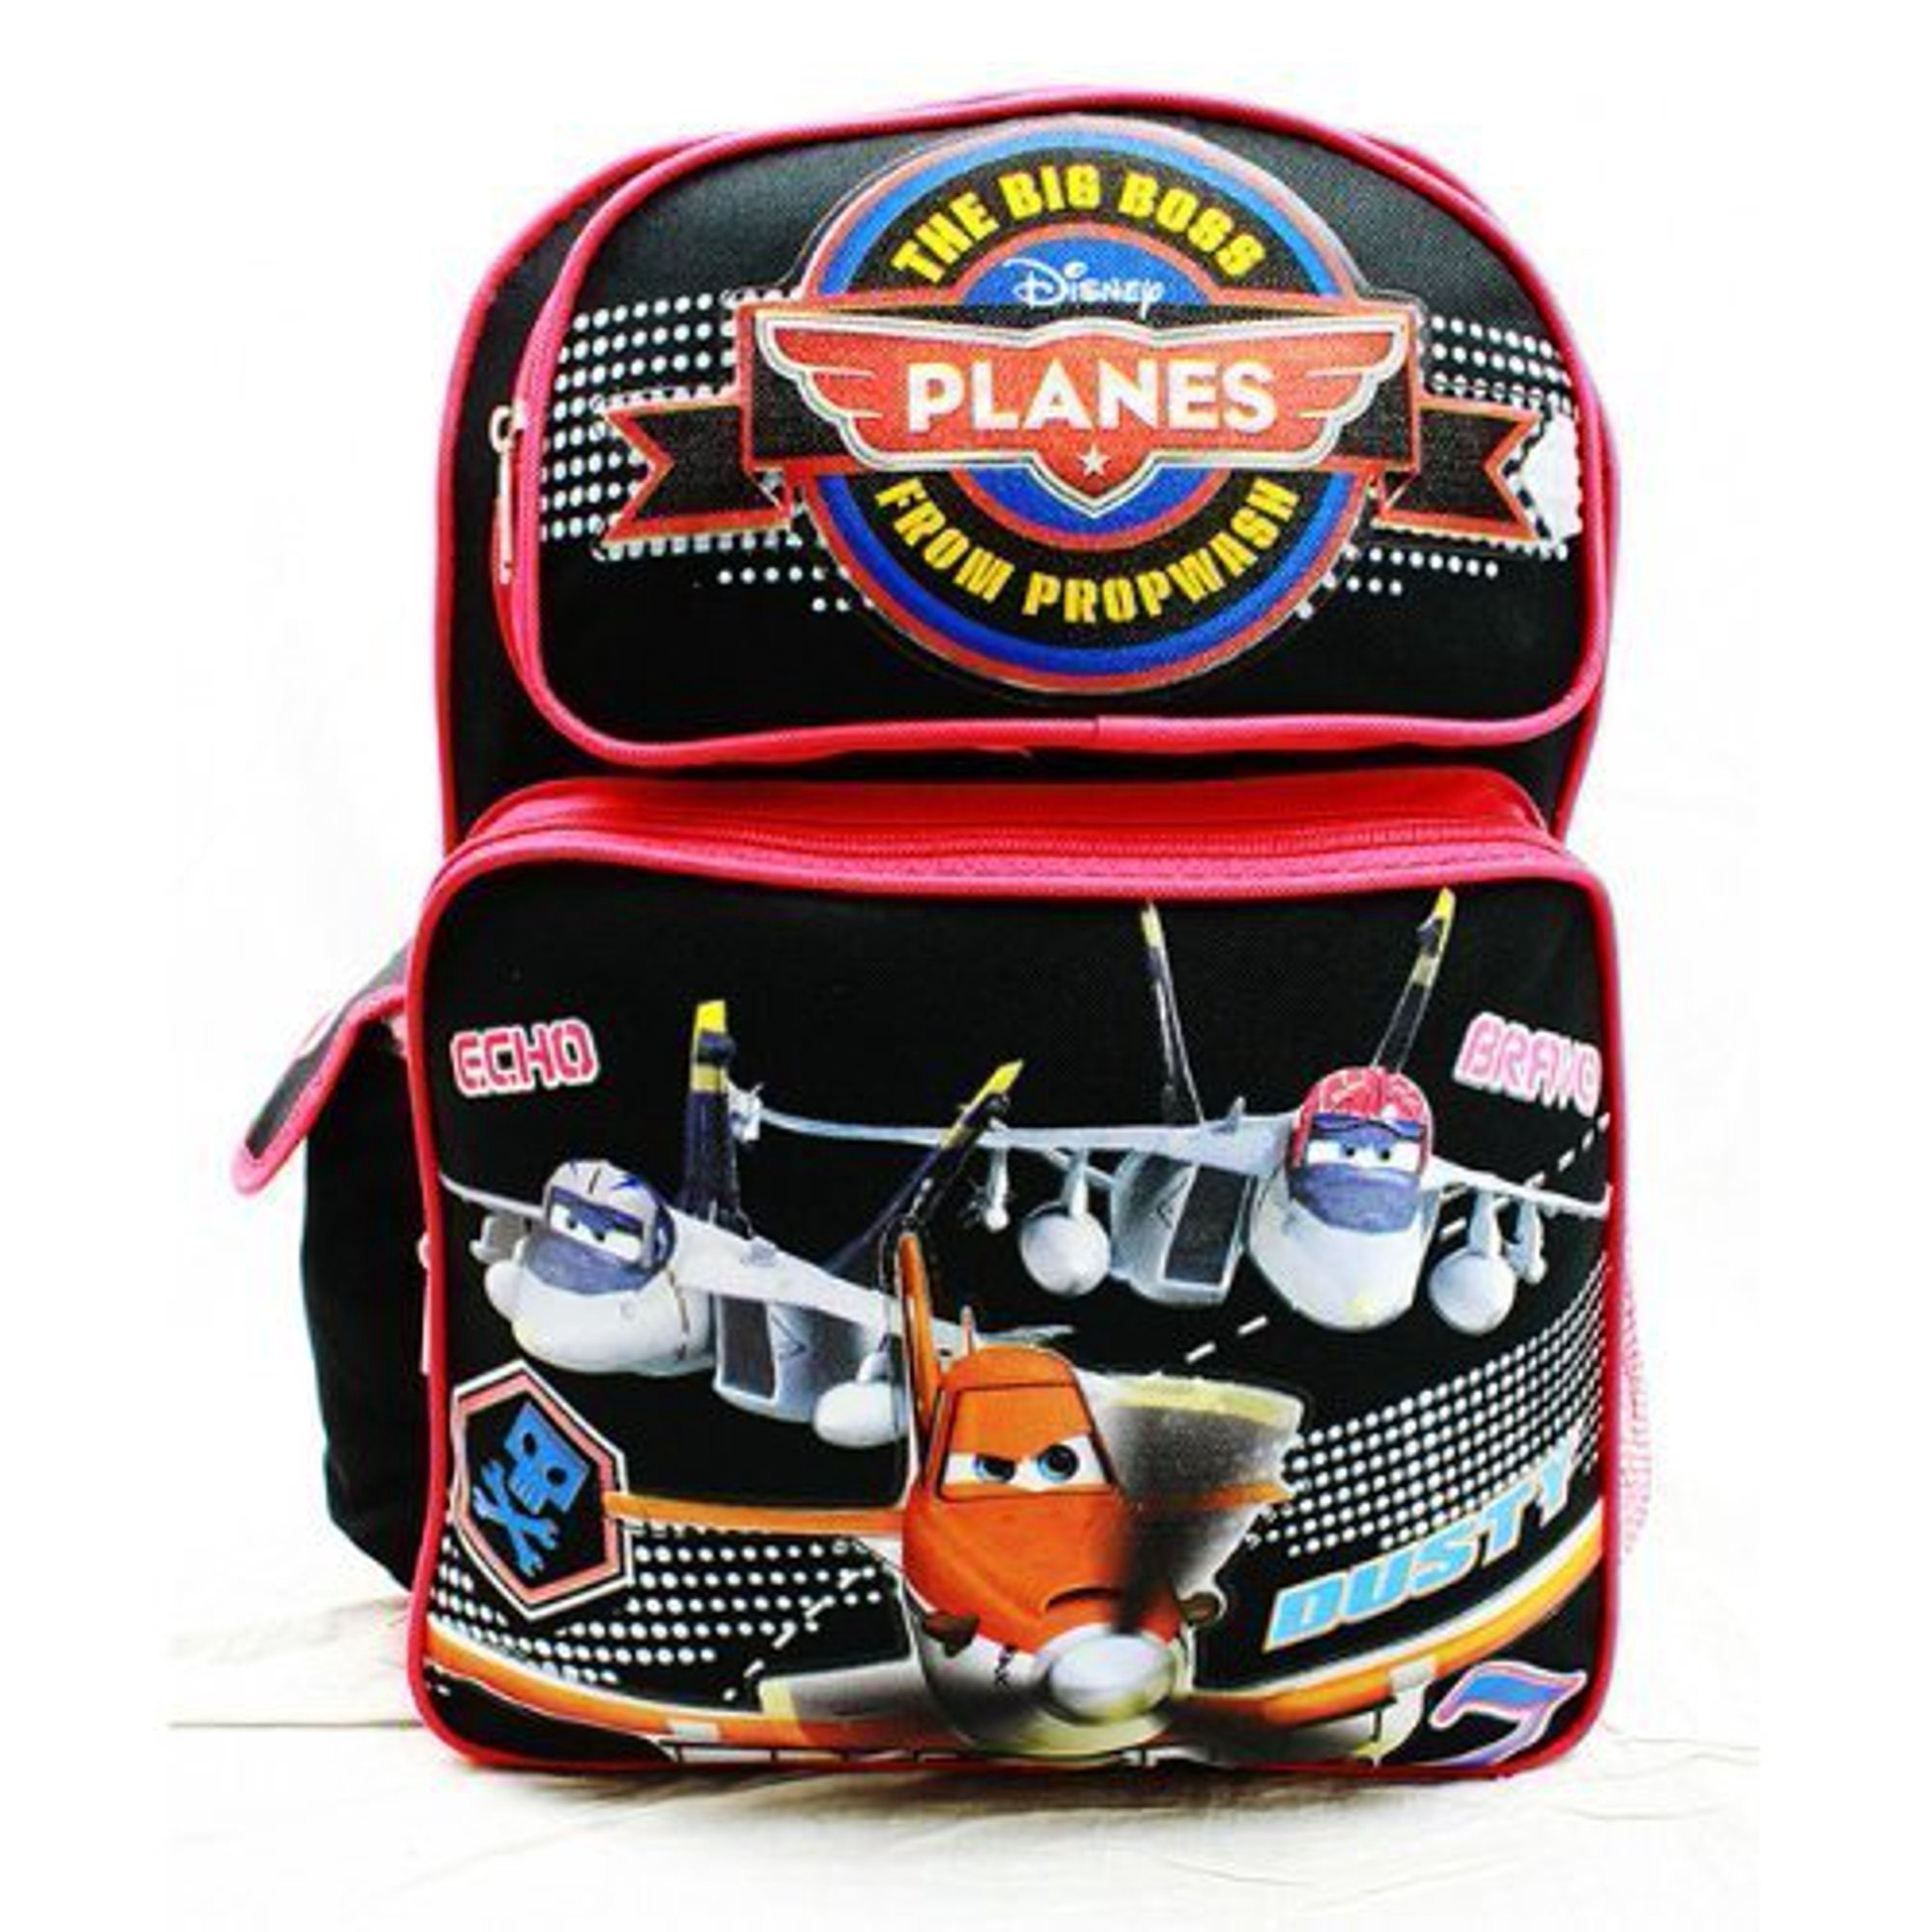 b18b90c7bd90 Disney Planes Backpack - The Big Boss From Propwash - 16'' Backpack ...